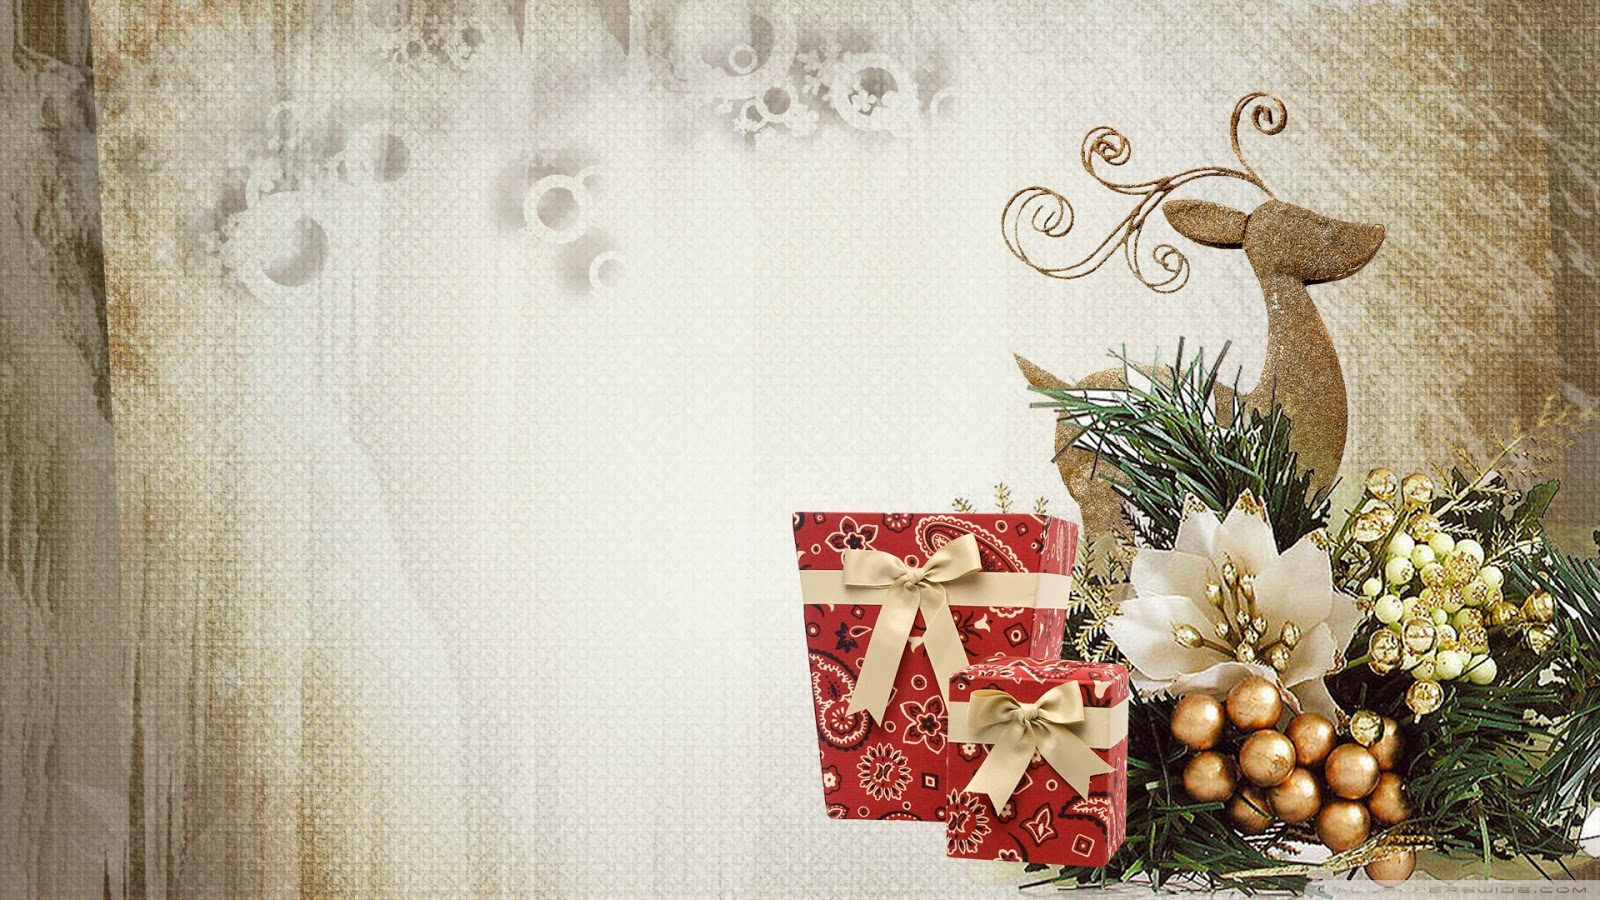 13 Elegant Christmas Graphics Images